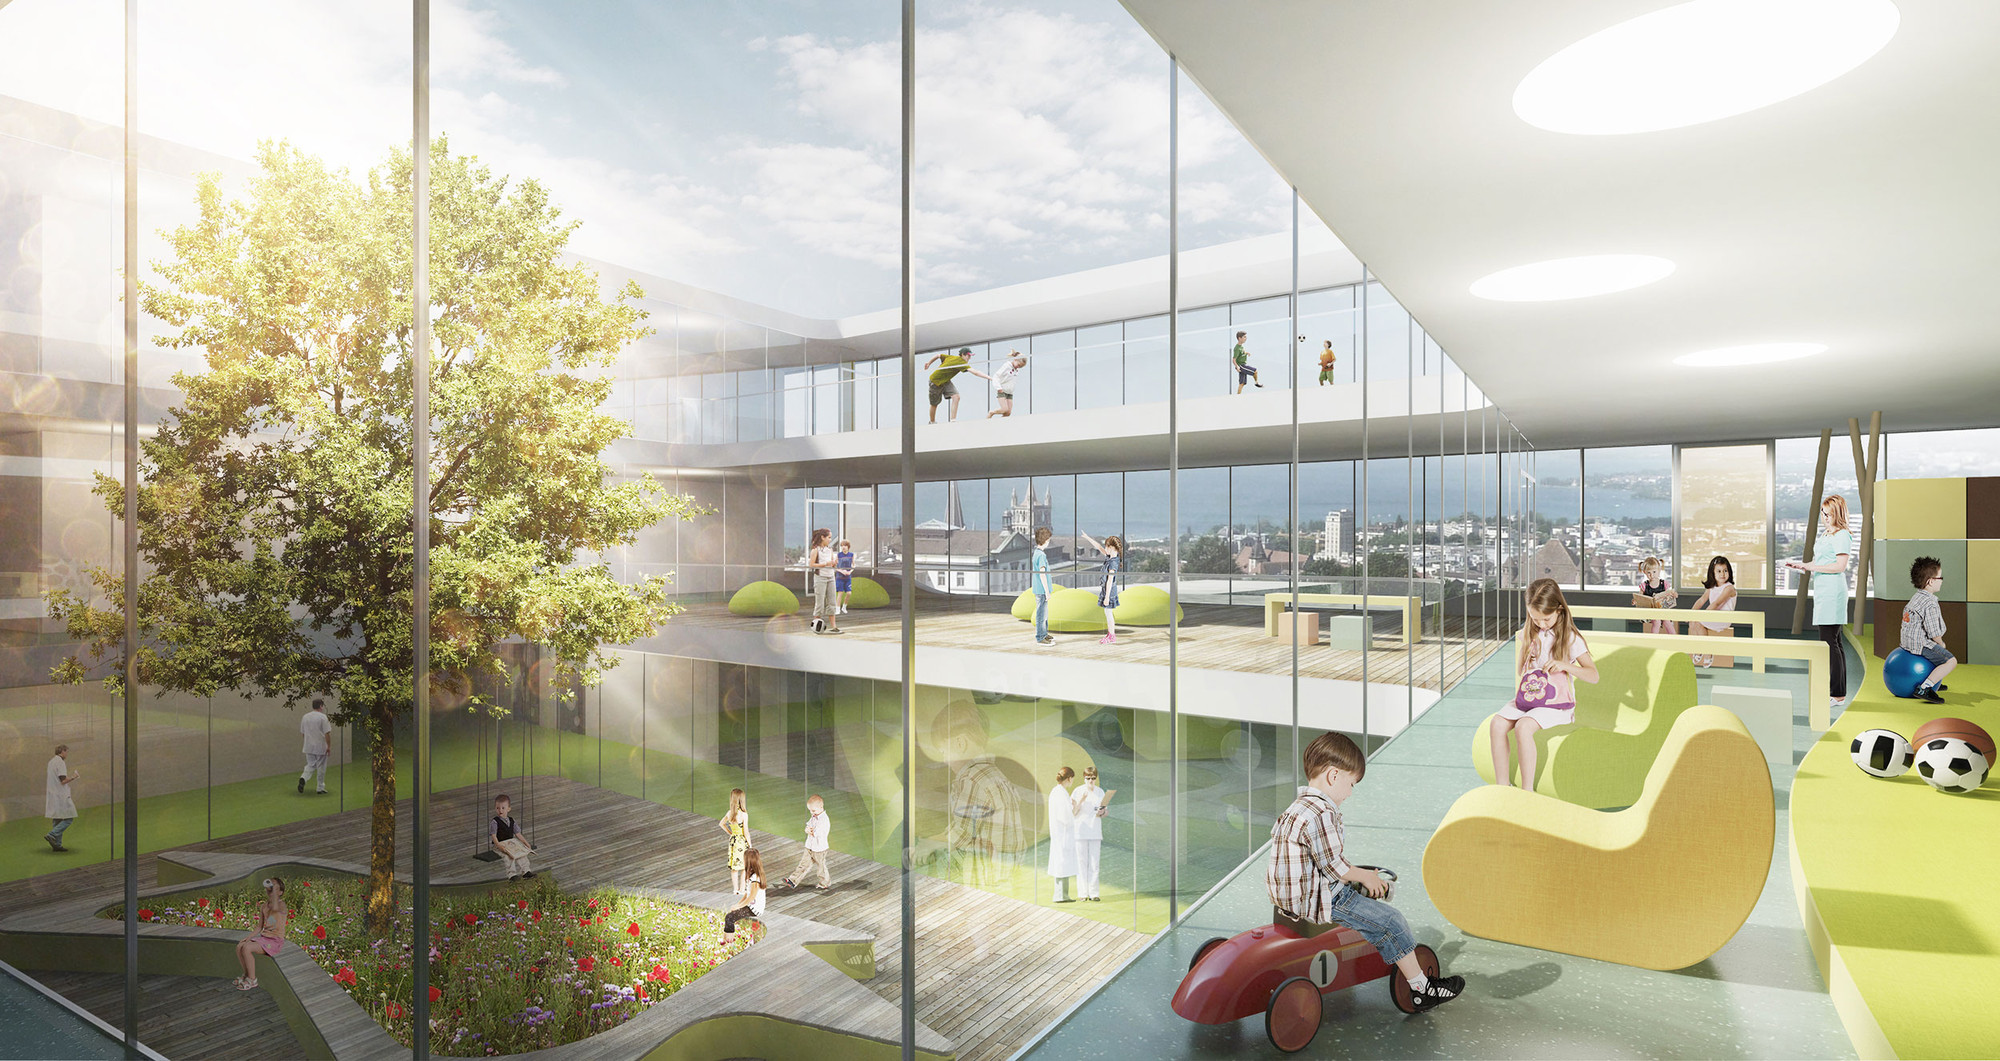 gmp Wins First Prize to Design Swiss Children's Hospital, © JB Ferrari & Associés SA